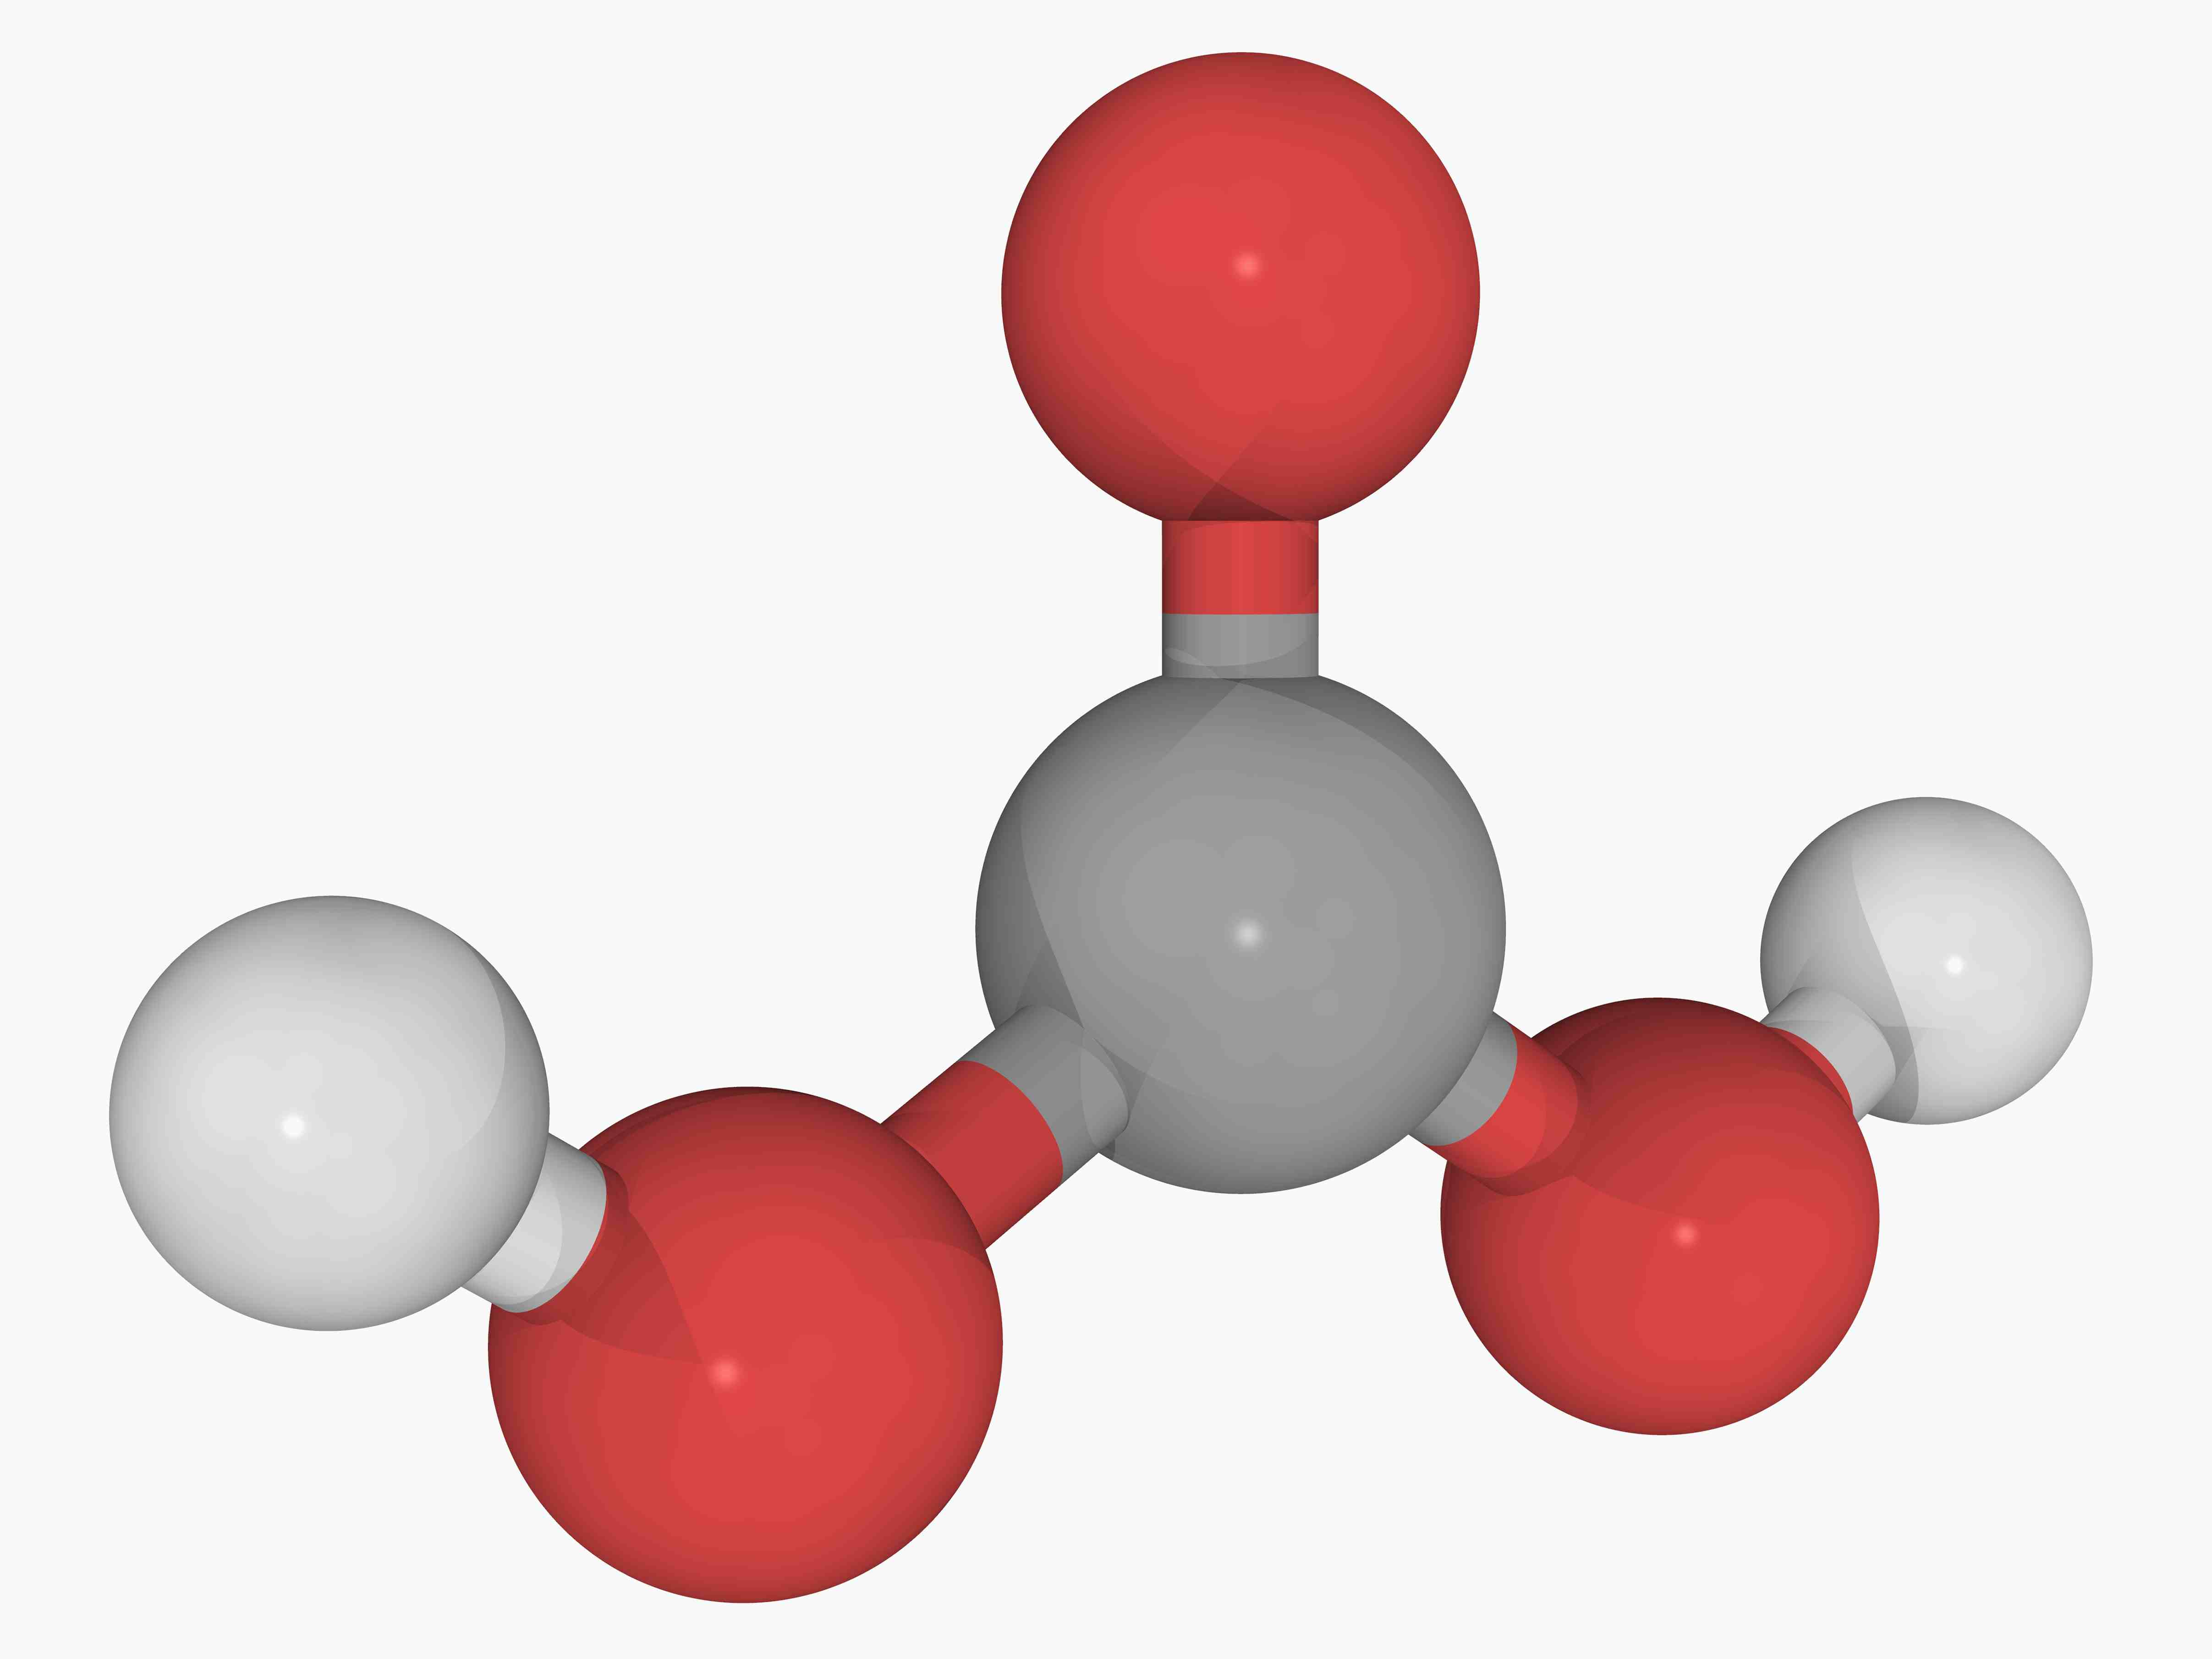 This is the chemical structure of carbonic acid.